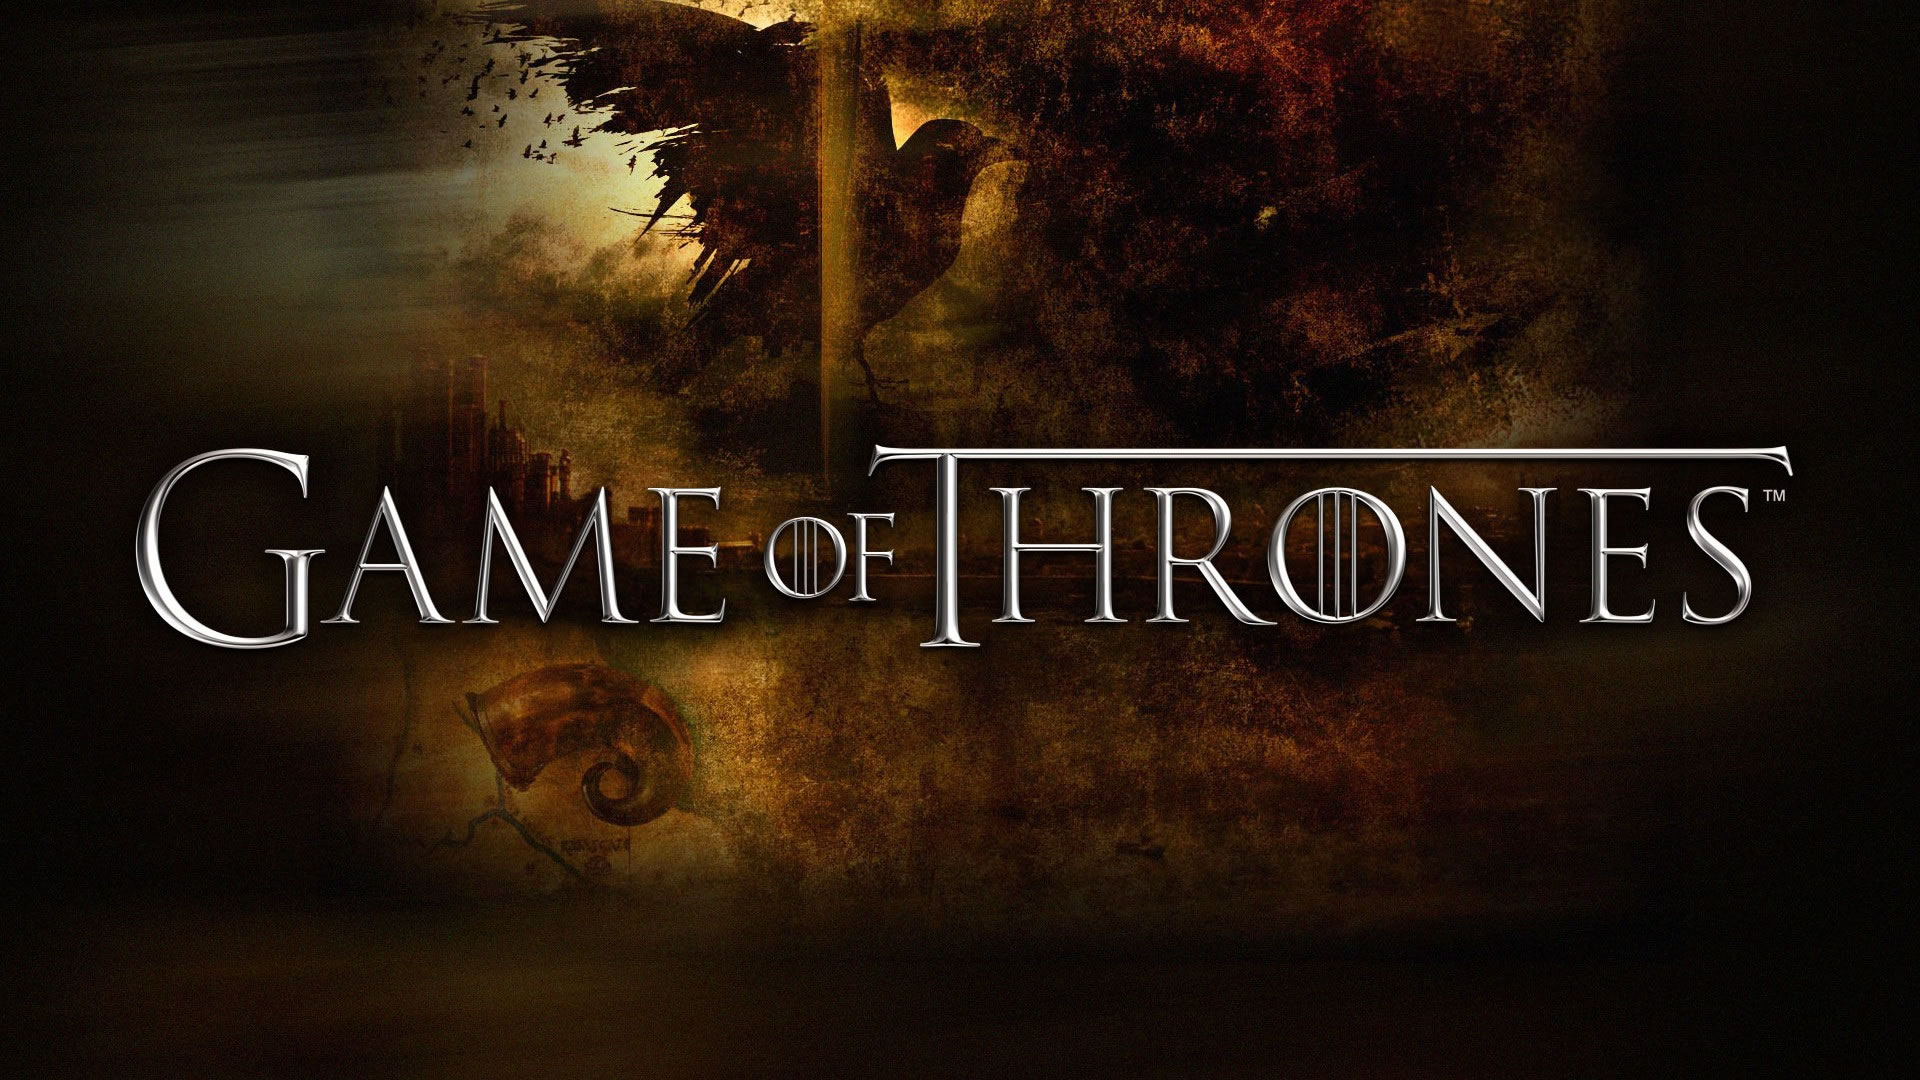 game of thrones wallpaper for android, game of thrones 4k download